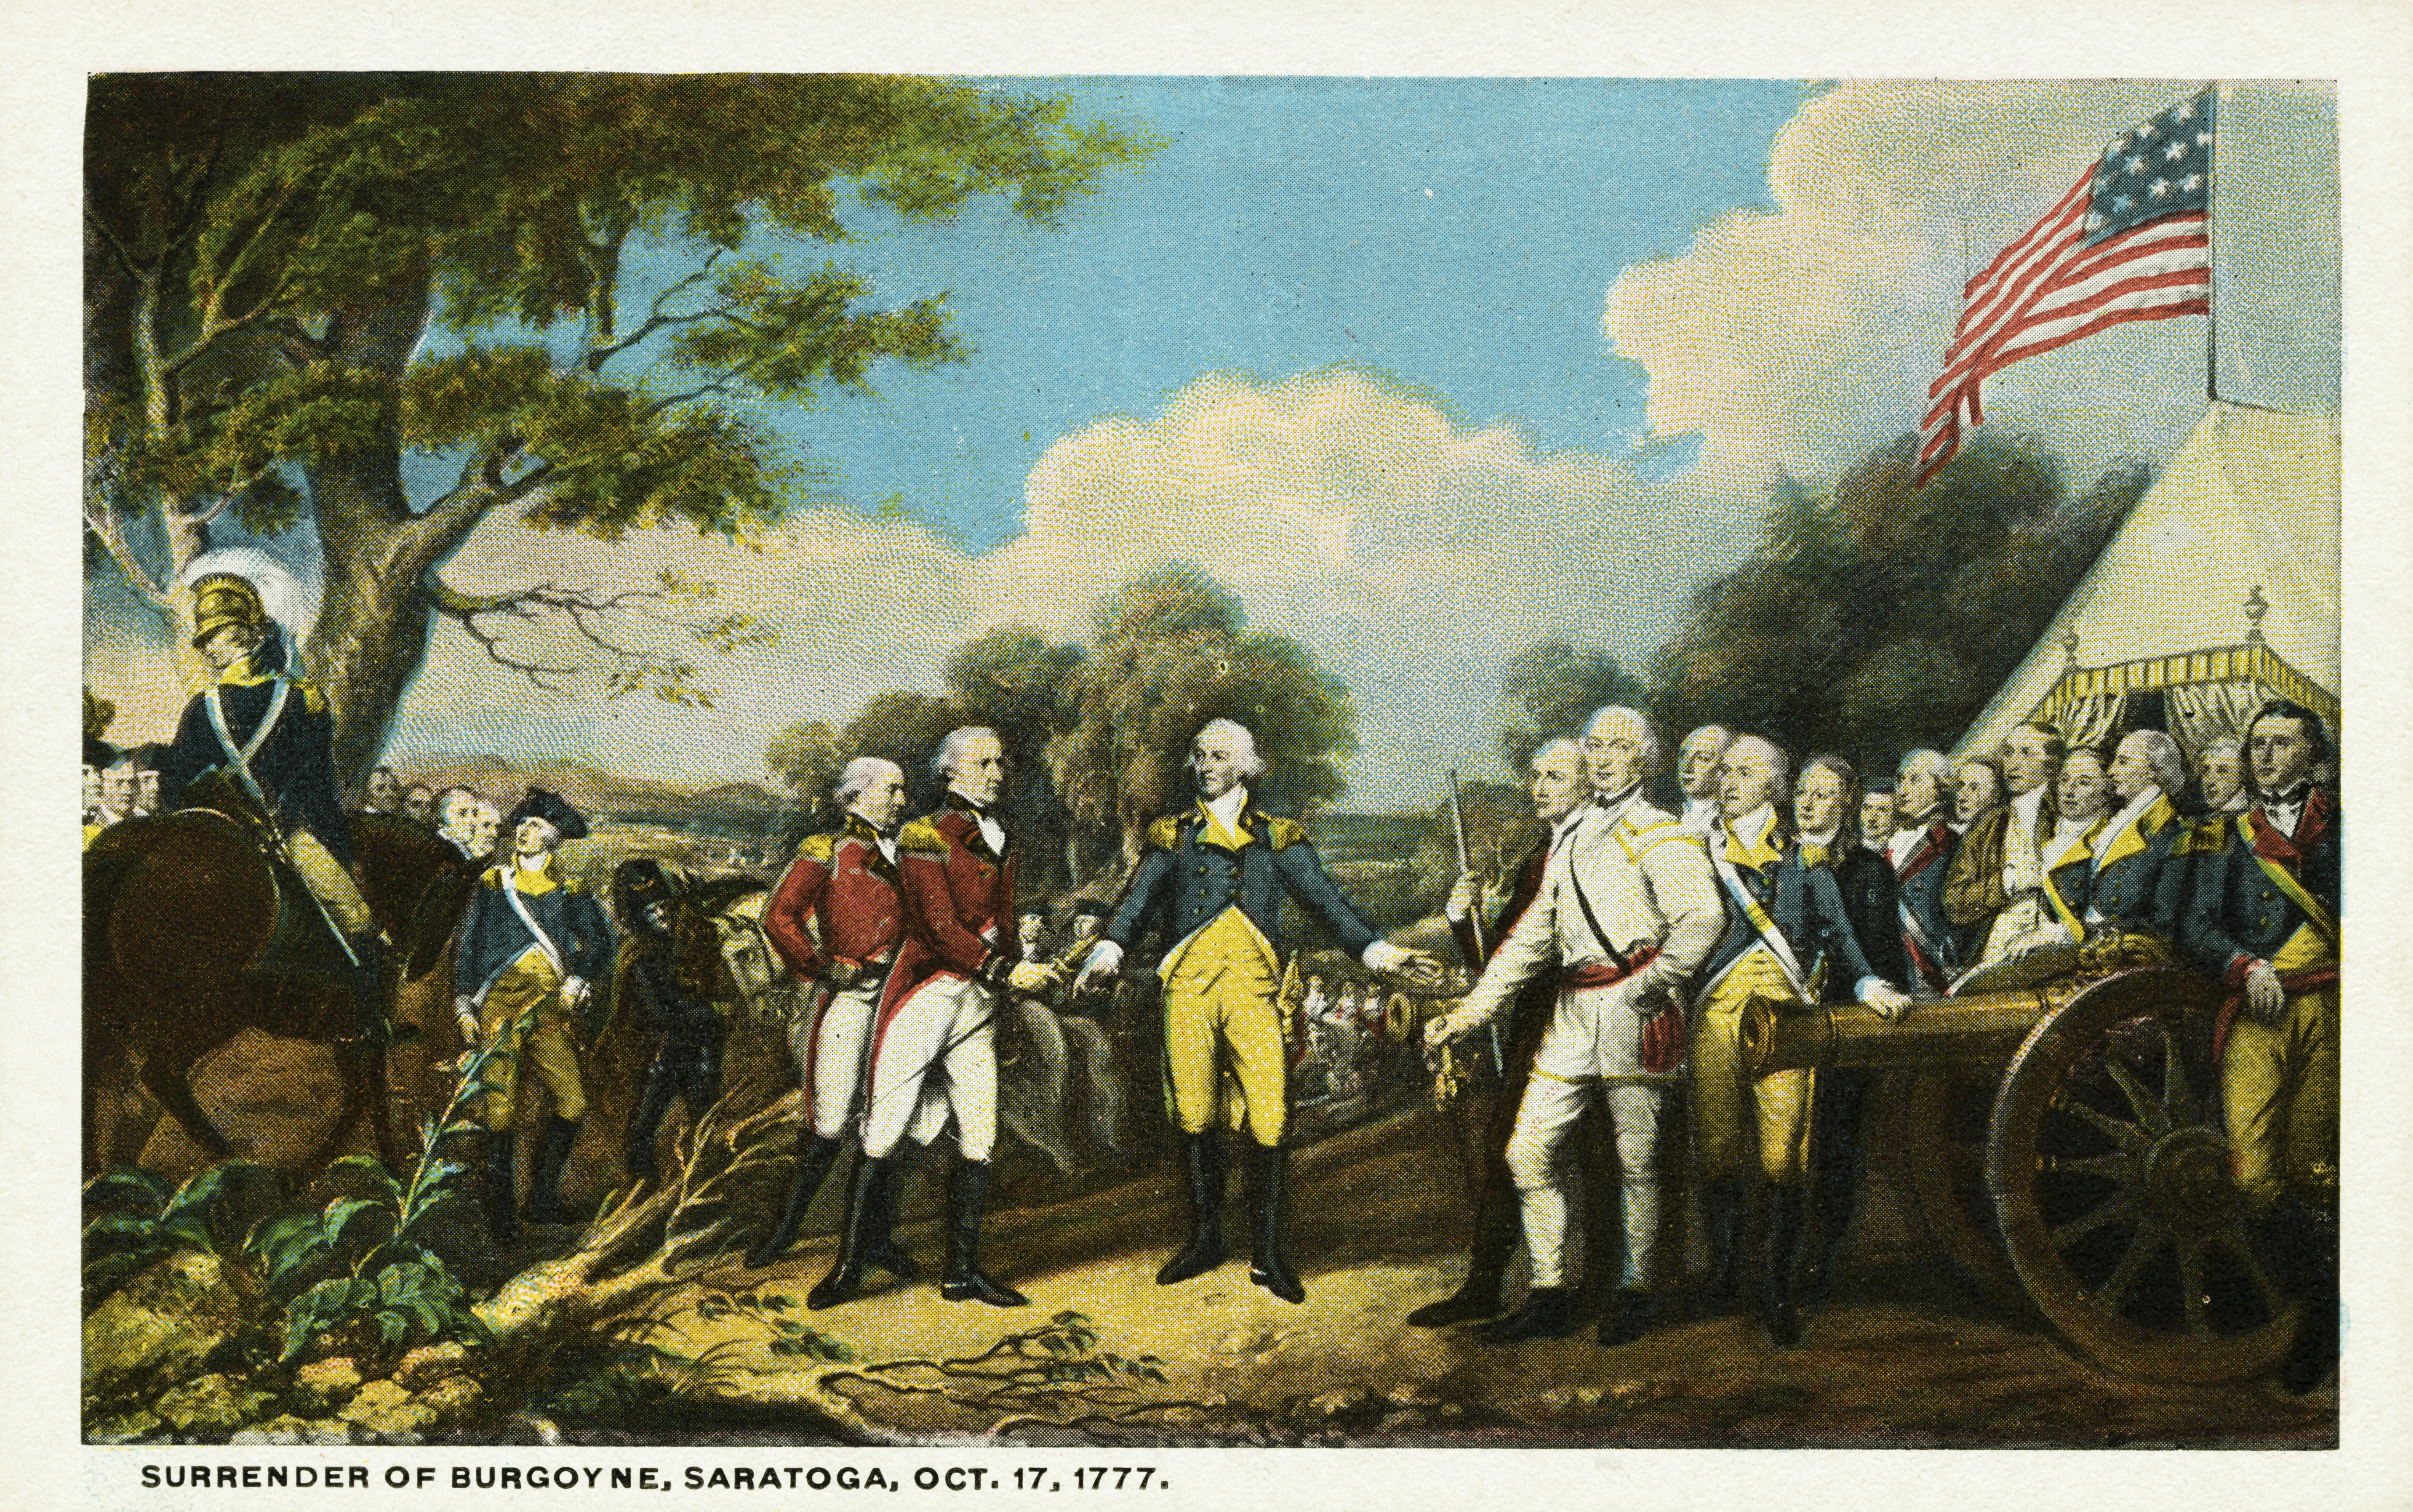 postcard-5 - American Revolution: Key Military Figures Pictures ...